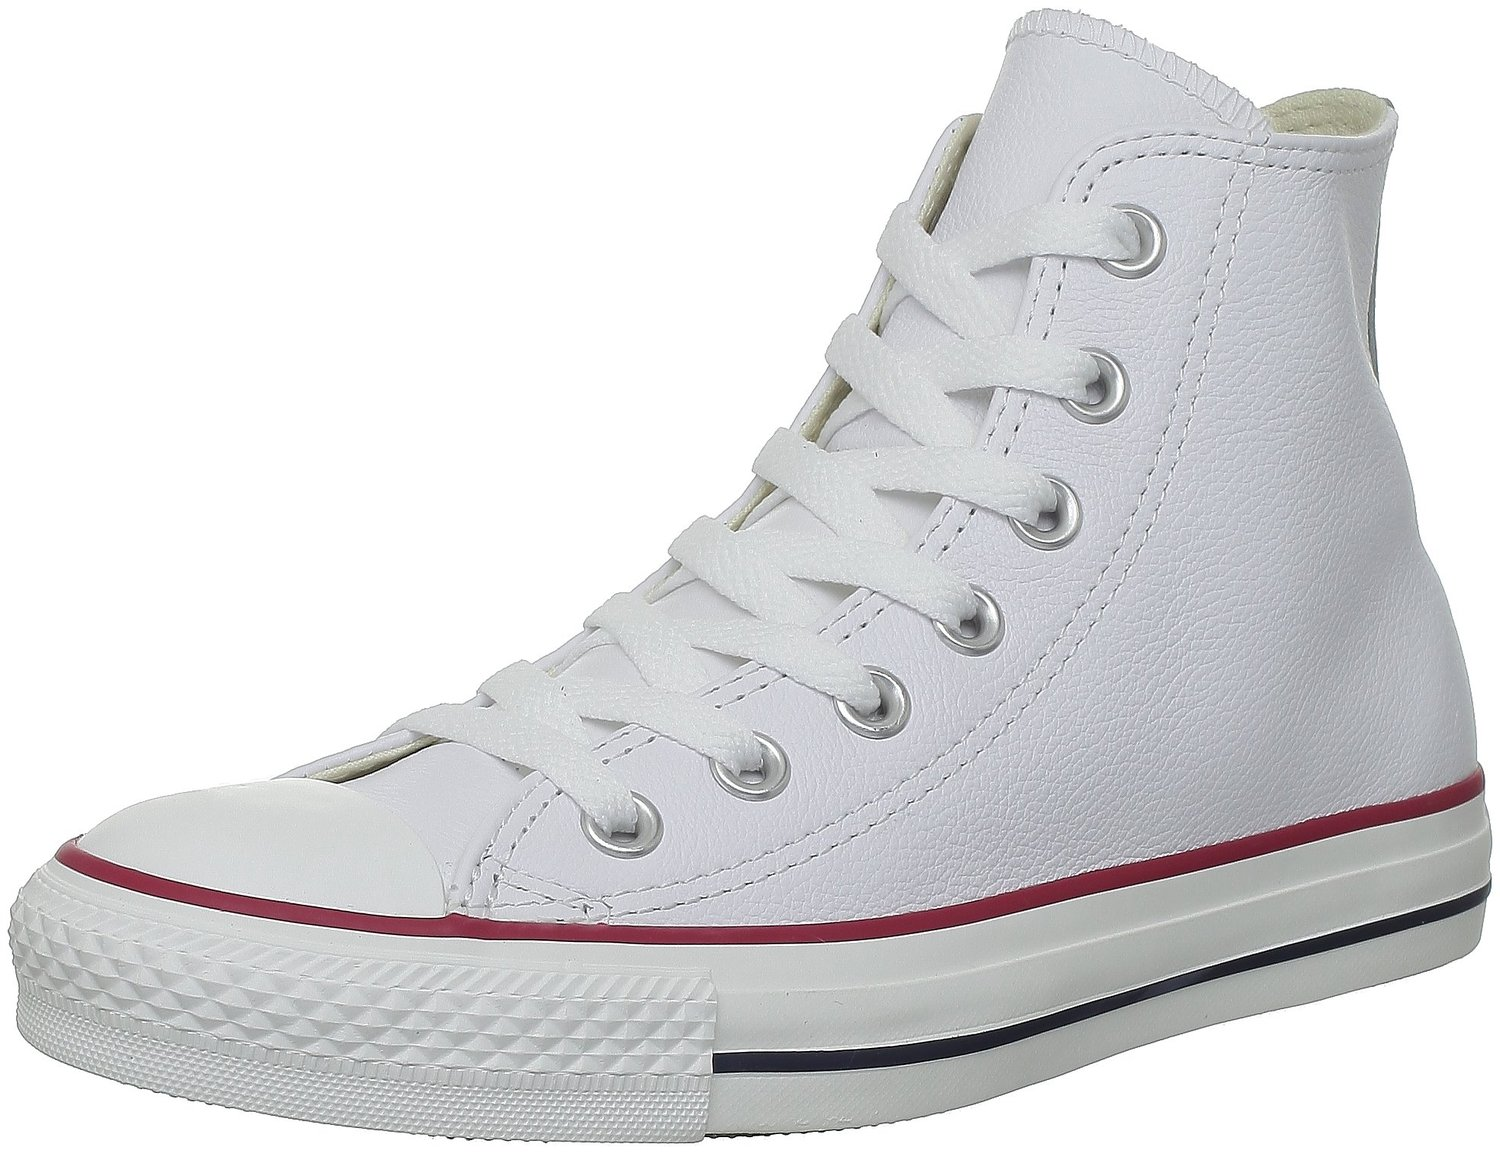 Converse Chuck Taylor All Star White Hi Unisex Leather Trainers Quick View 06cf989d7